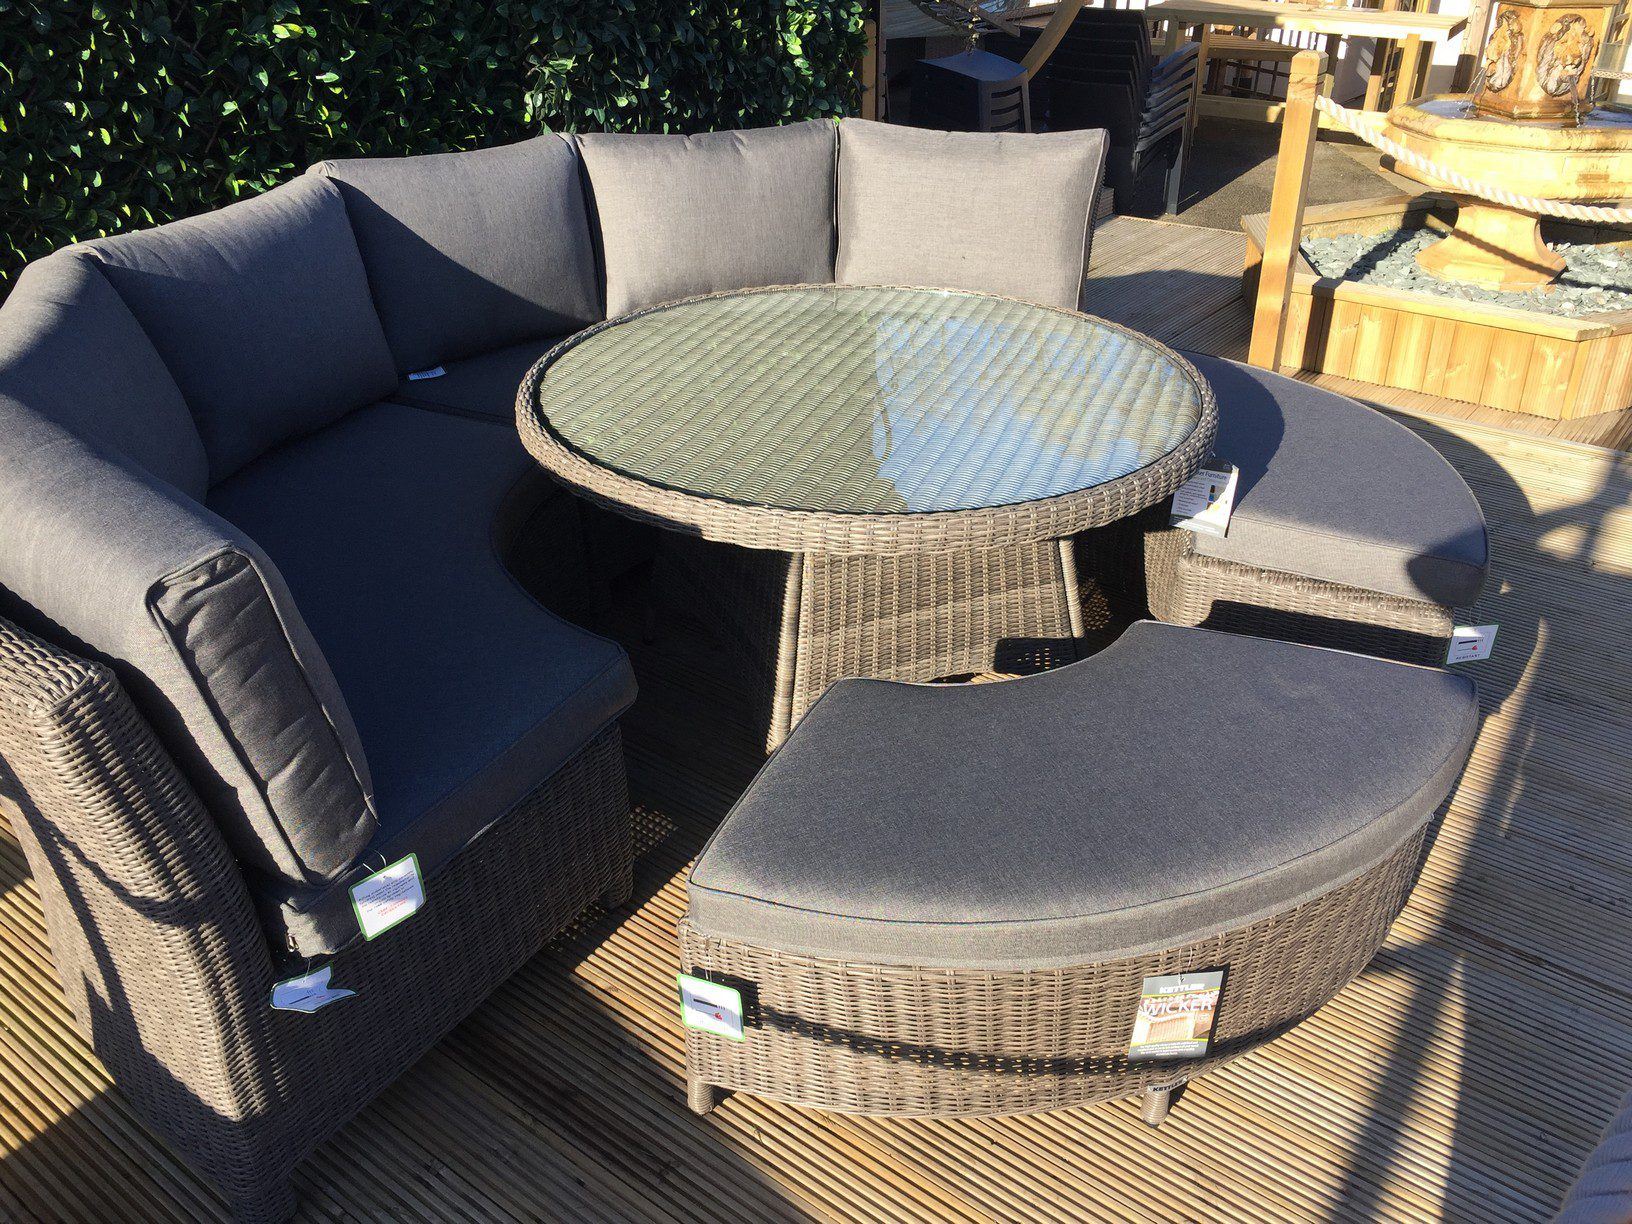 Kettler Palma Round Set In Rattan New For 2018 4